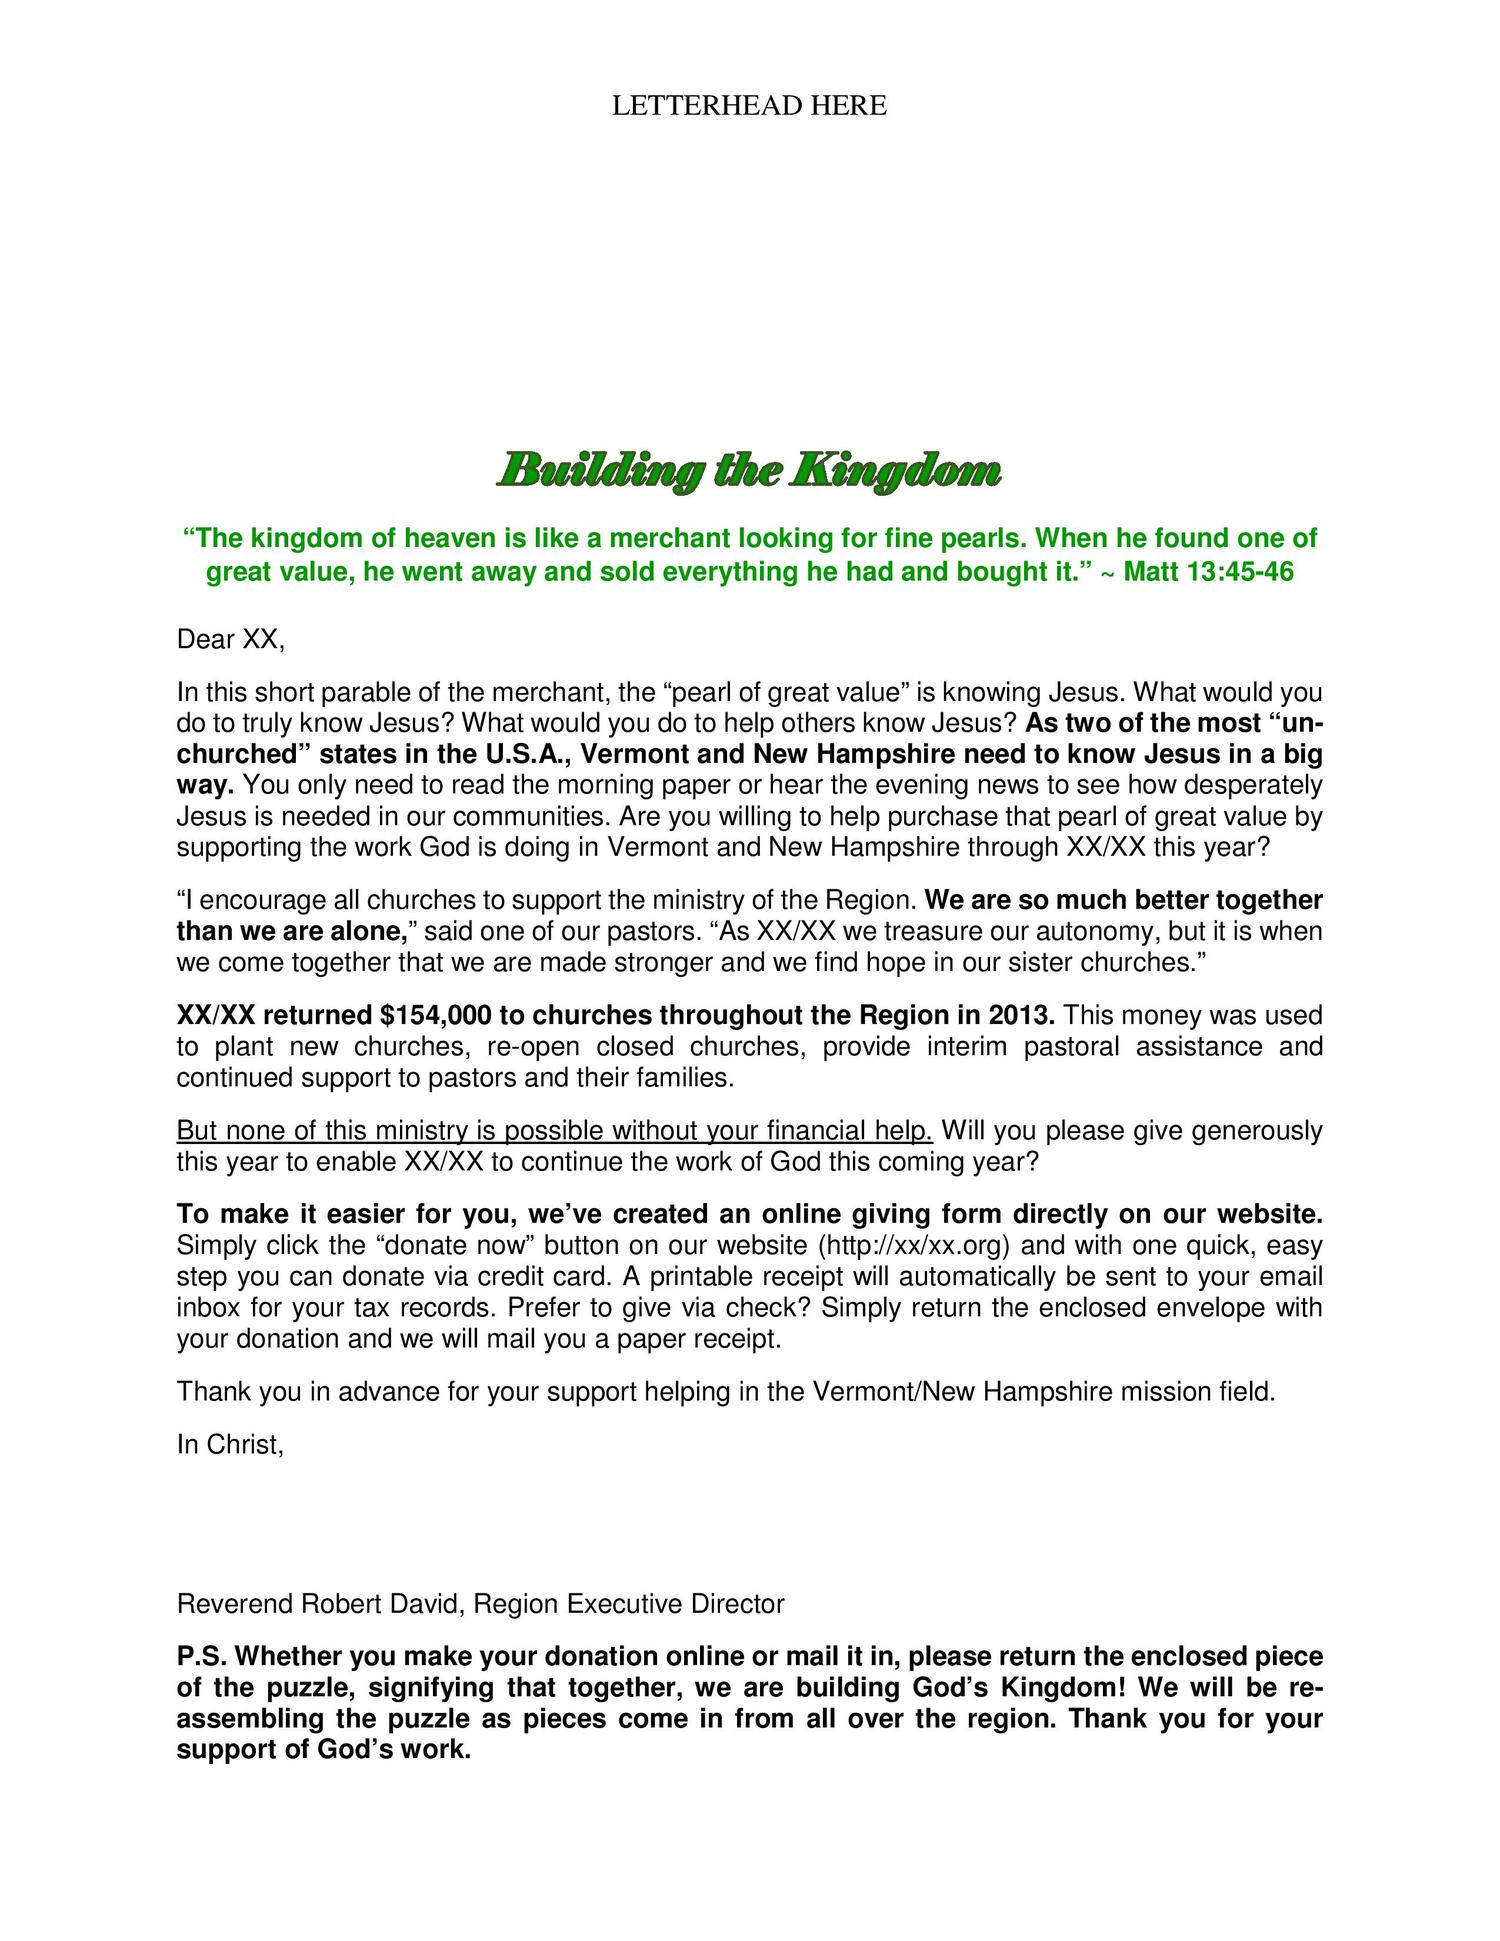 fundraising appeal letter template example-Fundraising Appeal Letters to Grab Attention and Get Results 15-i